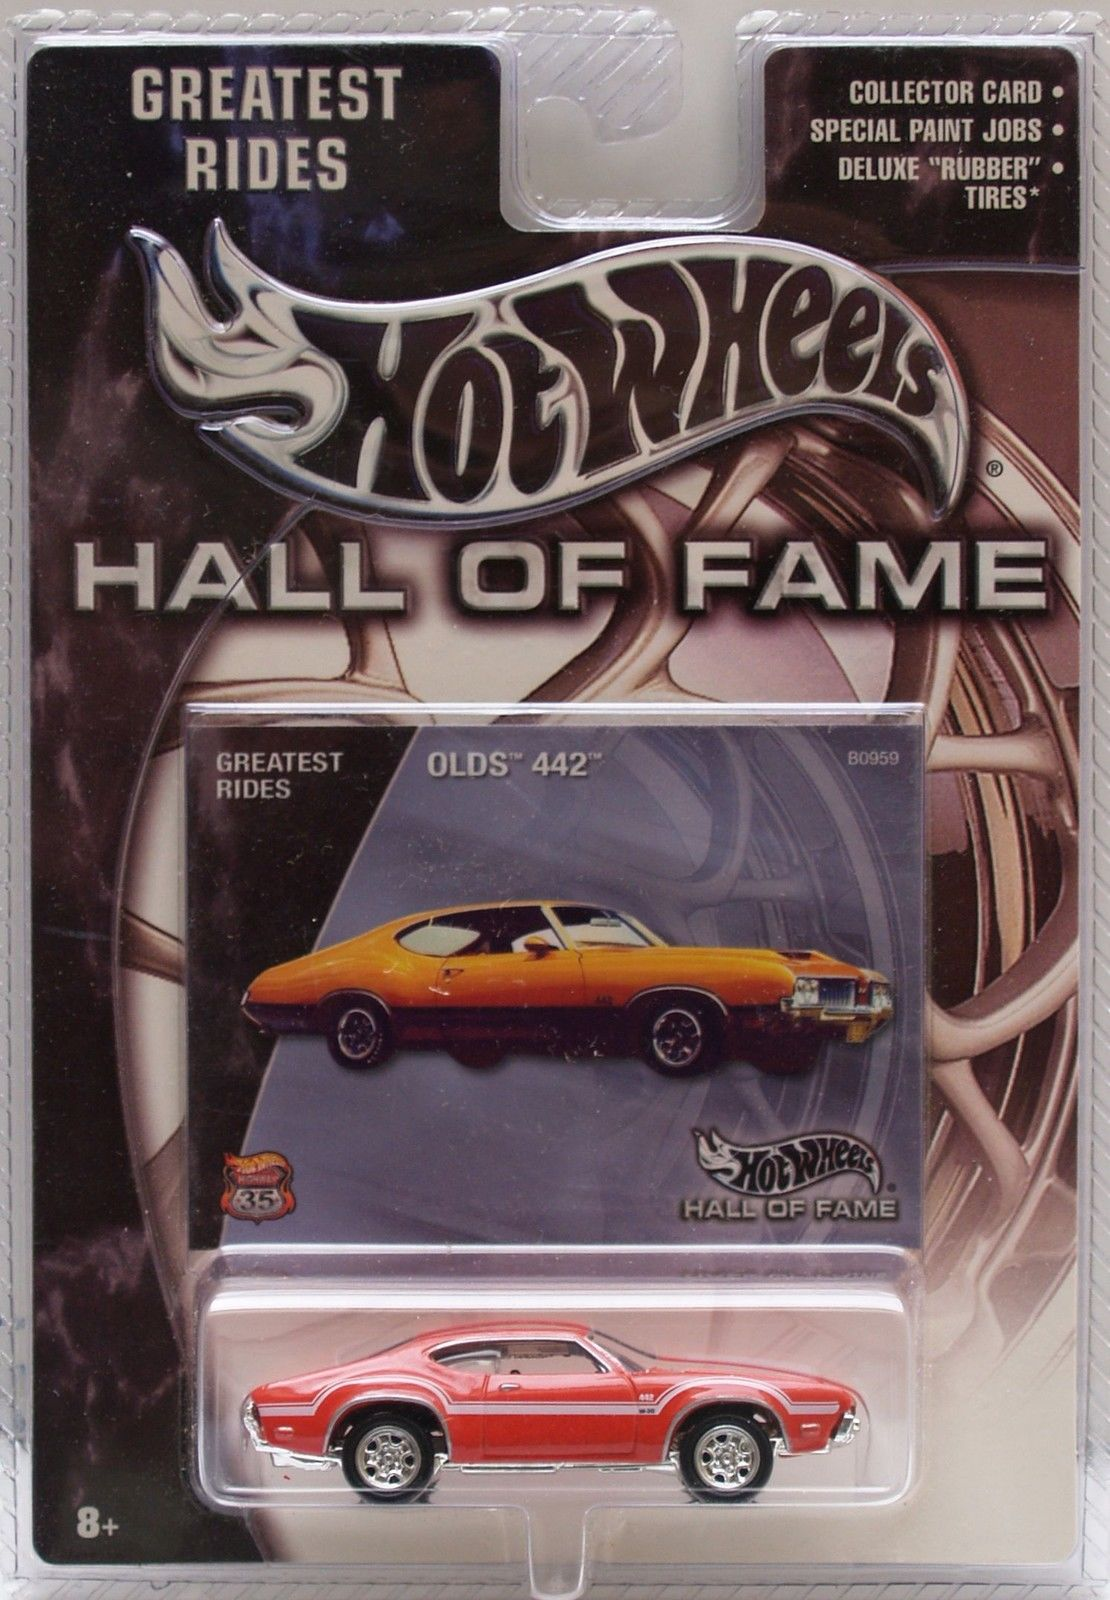 HOT WHEELS 2002 GREATEST RIDES - HALL OF FAME - OLDS 442